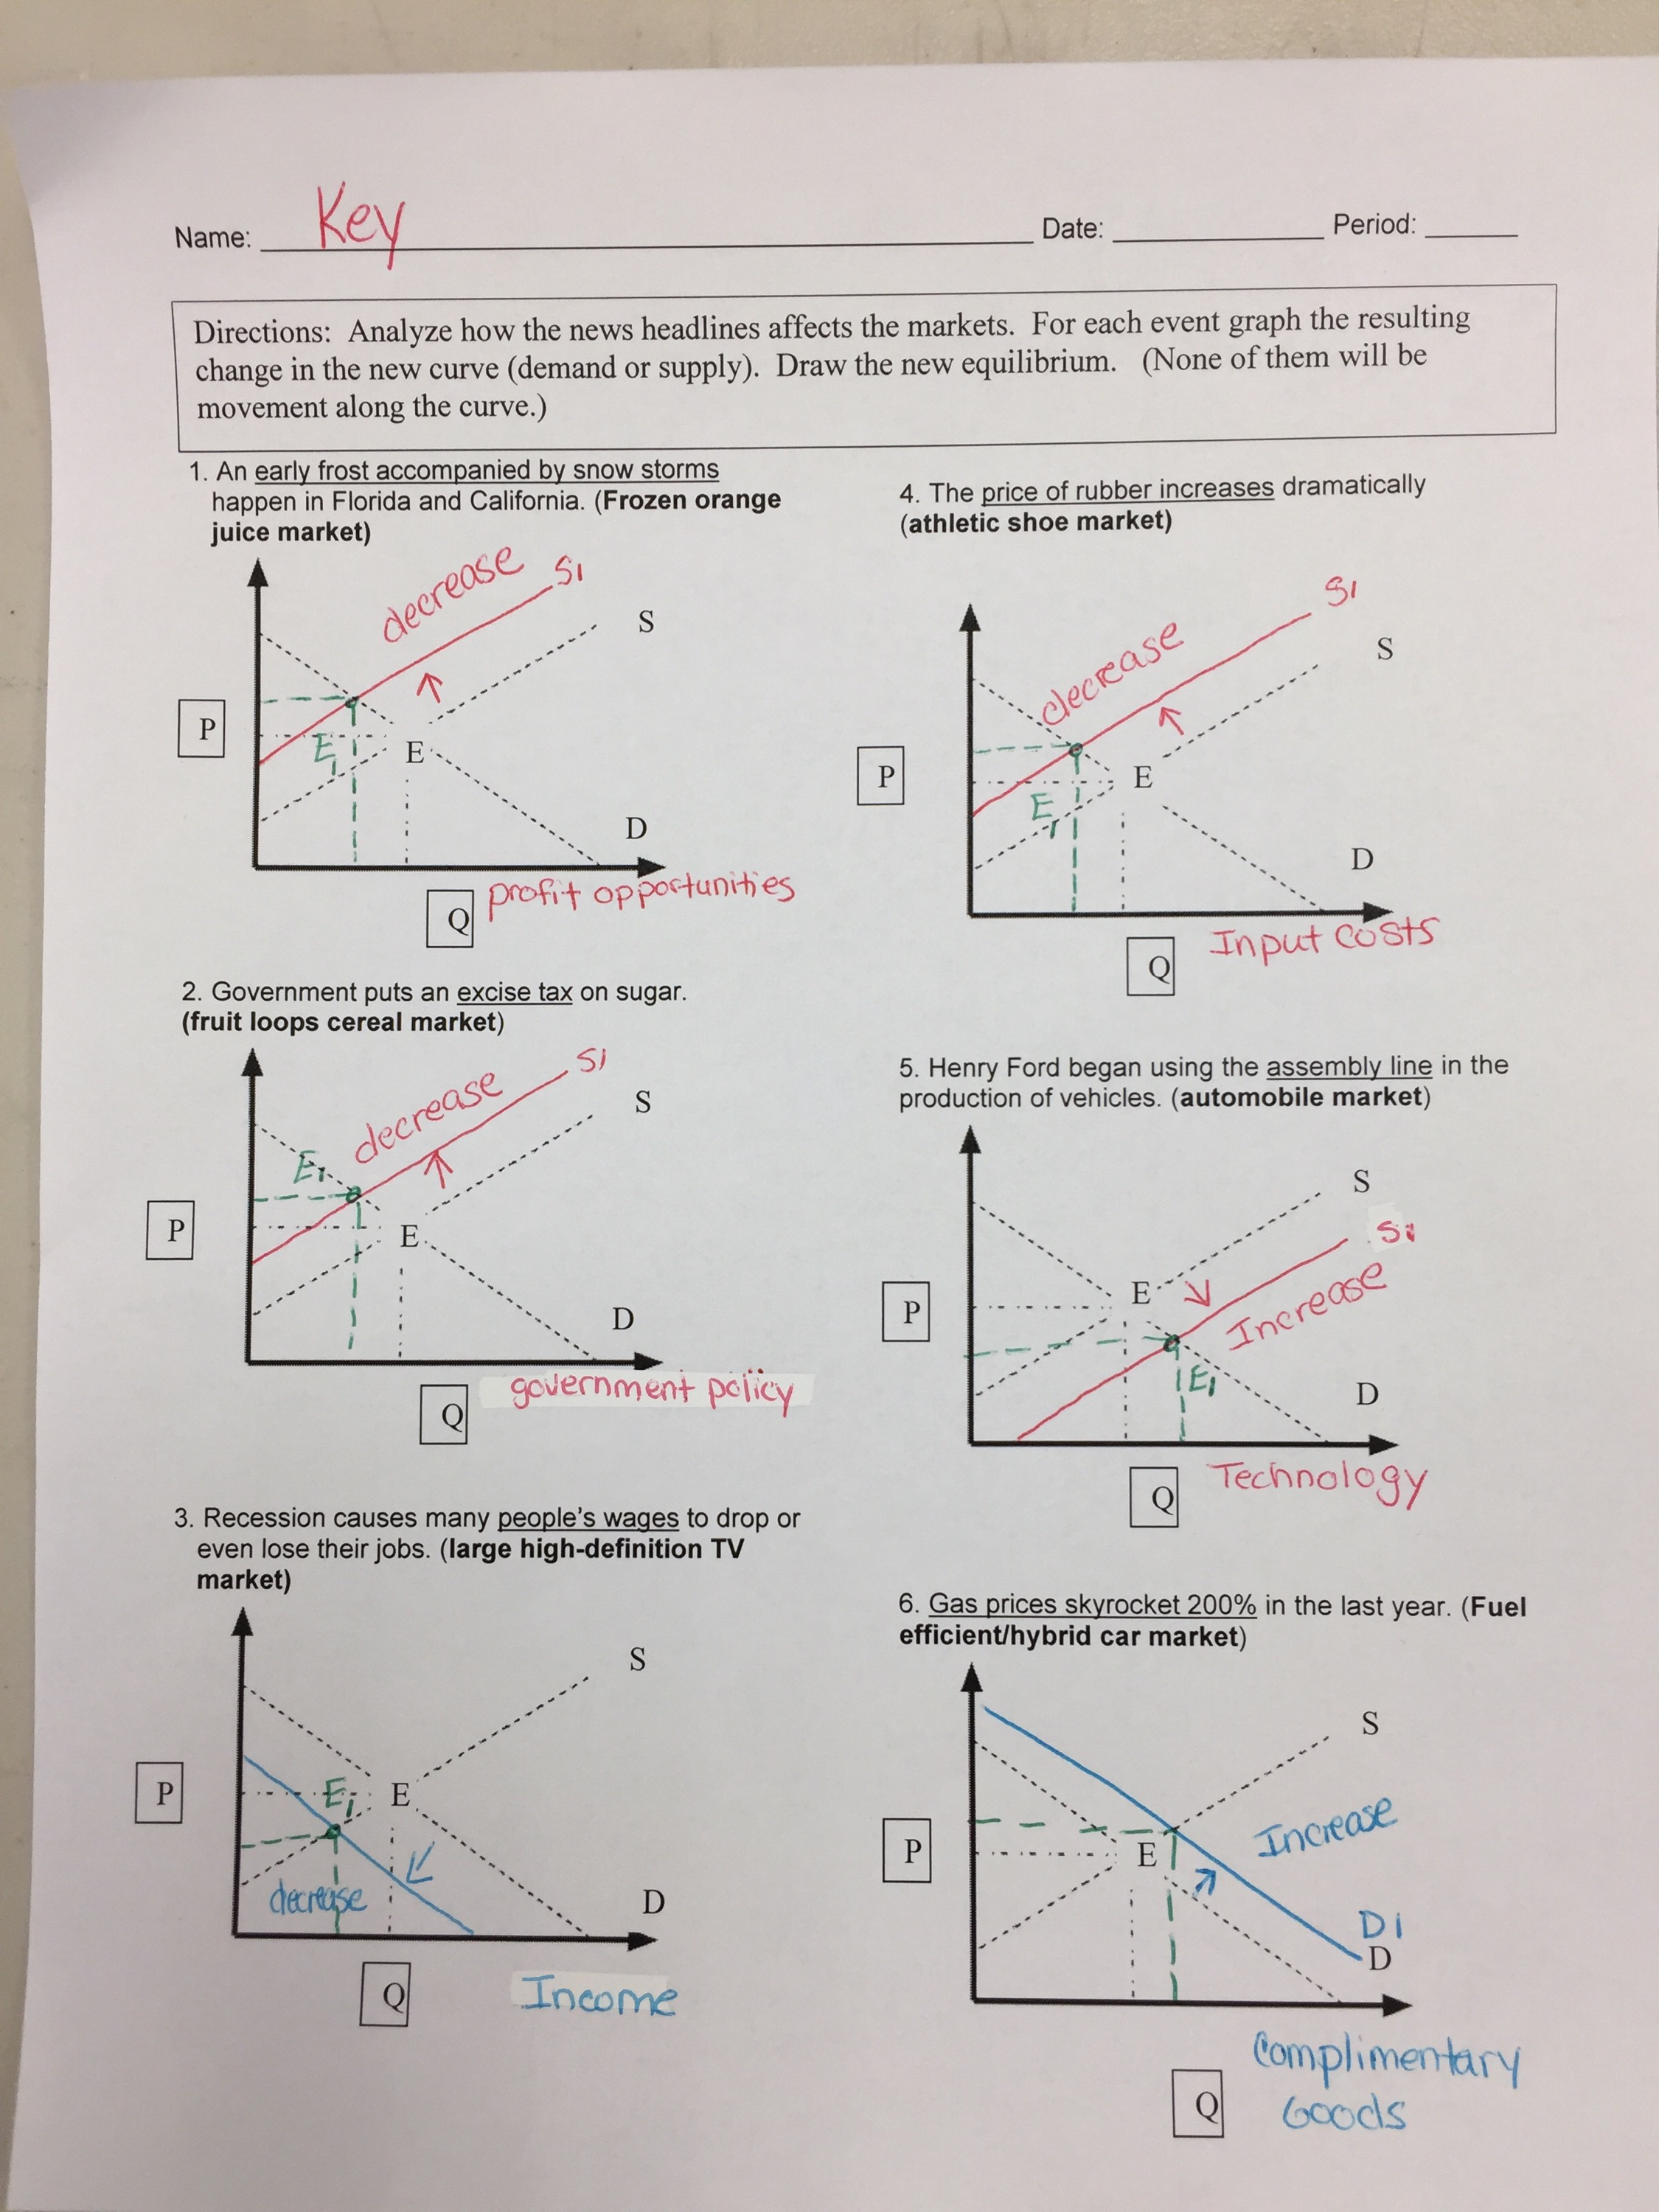 worksheet Supply And Demand Worksheet armani brenda social science what we did in economics class demand supply worksheet key